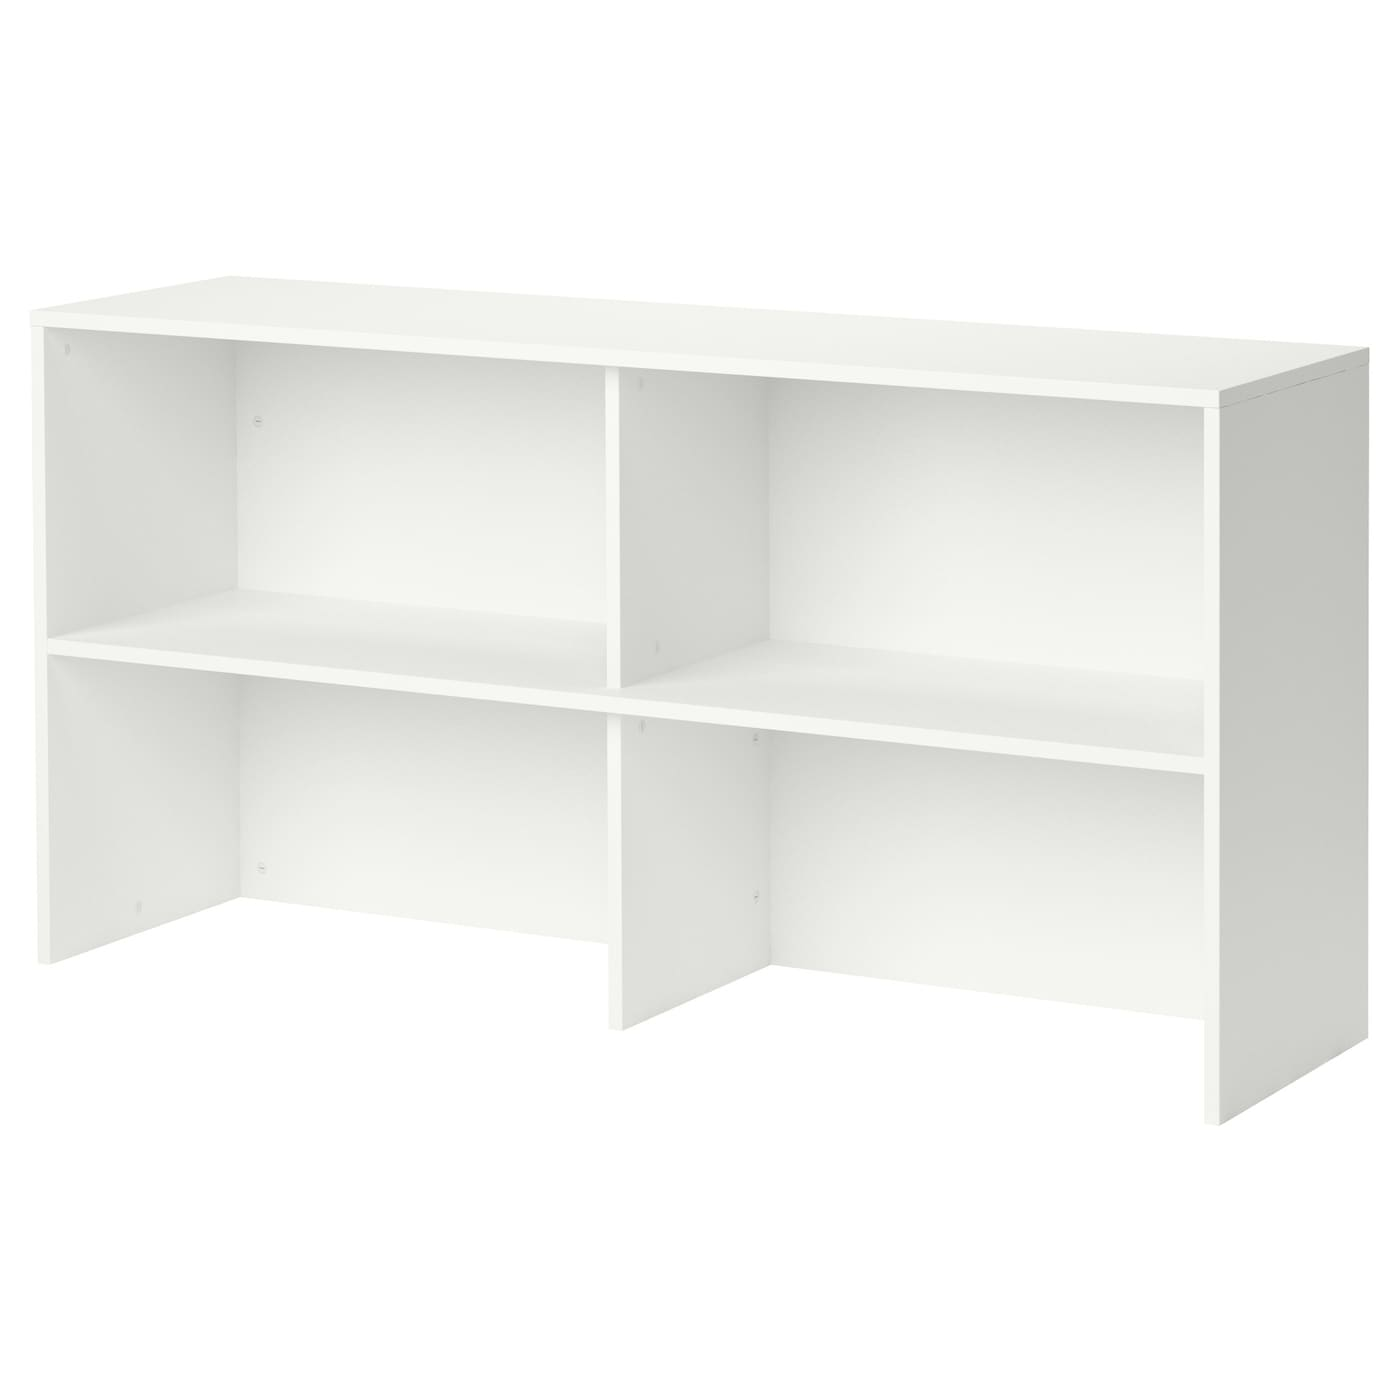 galant add on unit white 160x80 cm ikea. Black Bedroom Furniture Sets. Home Design Ideas